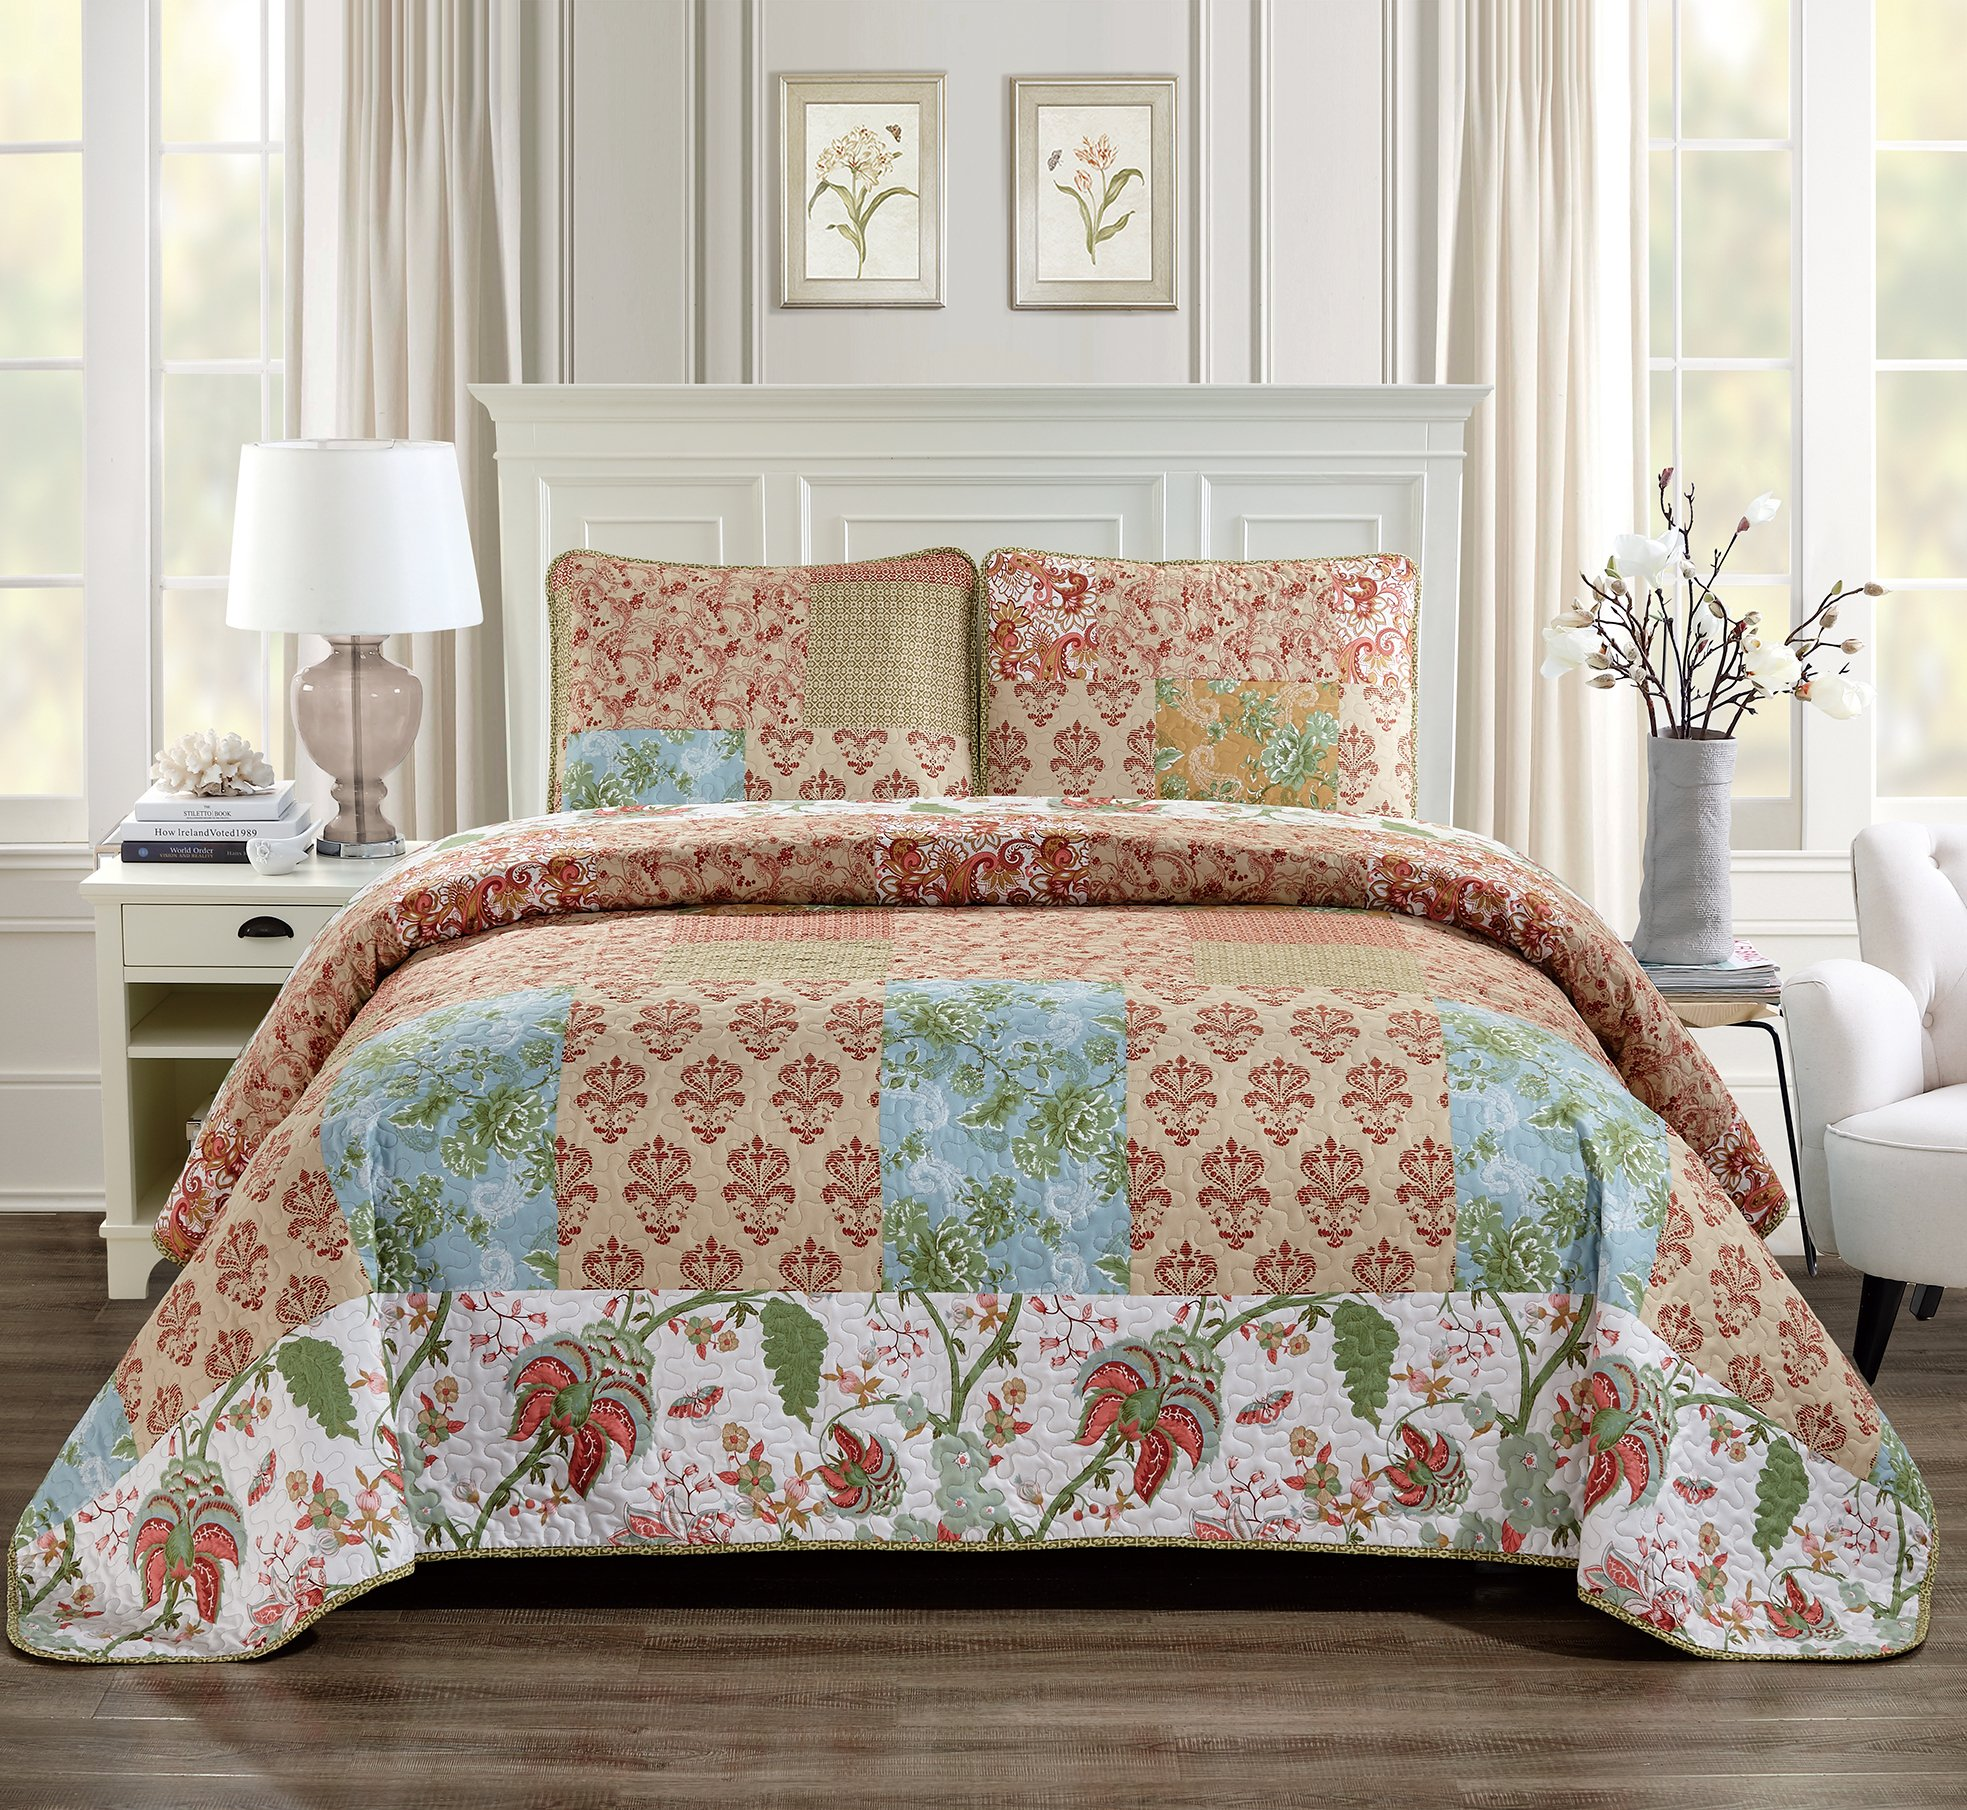 King/California King 3pc Quilted Bedspread Set Oversized Coverlet Floral Patchwork Beige Rust Light Blue Green White New